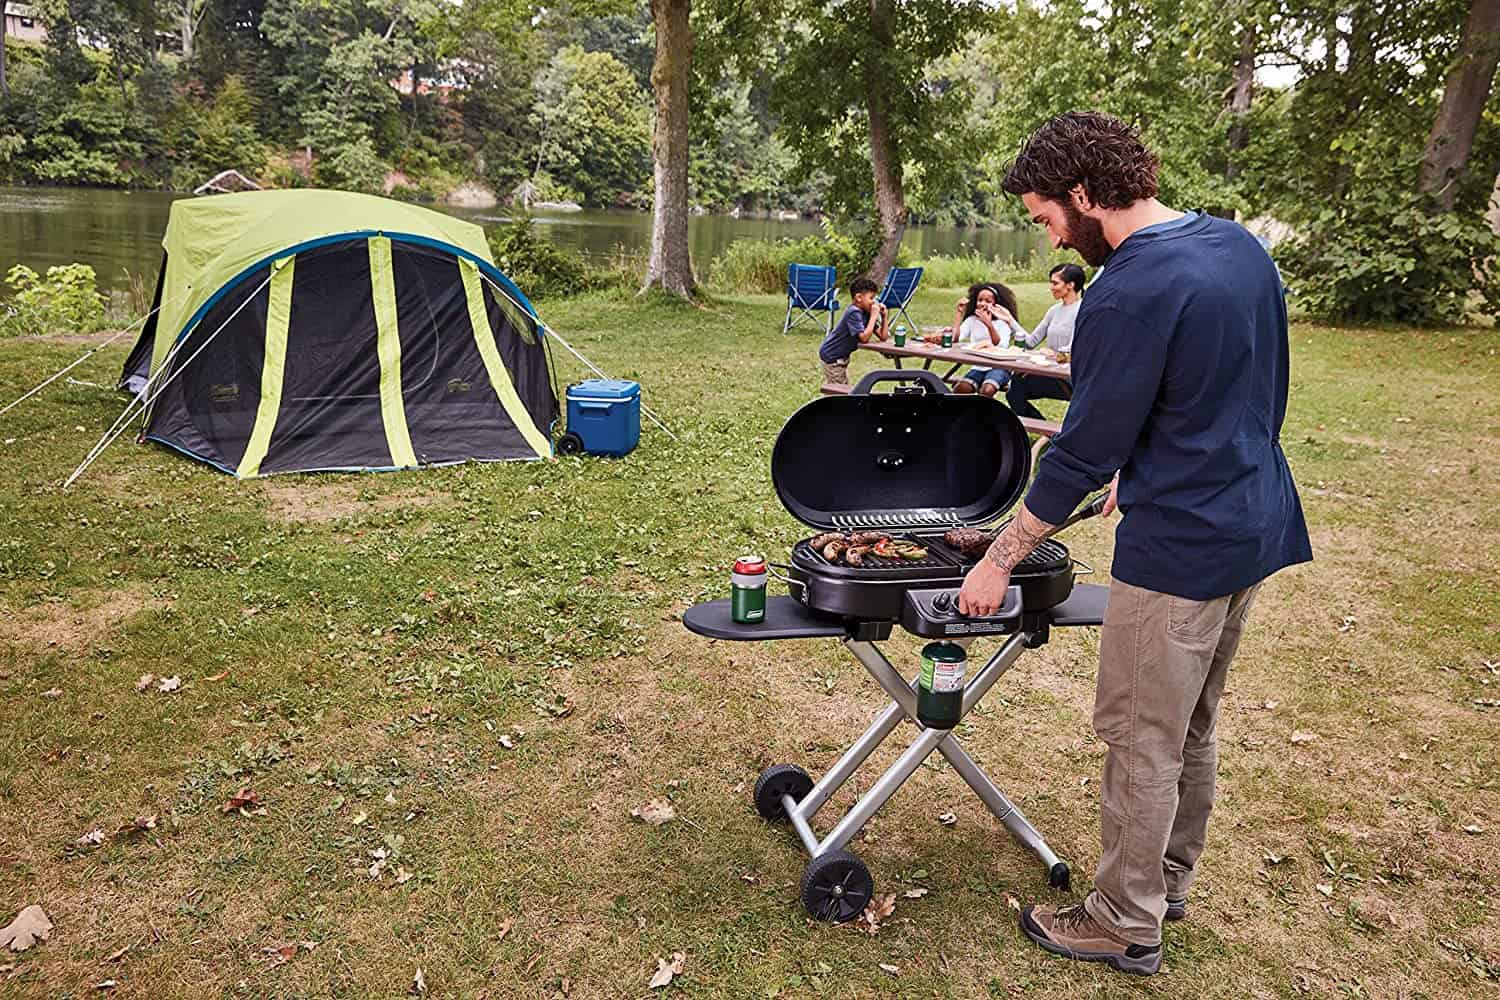 Best 3-burner propane grill for tailgating- Coleman RoadTrip 285 on camping trip